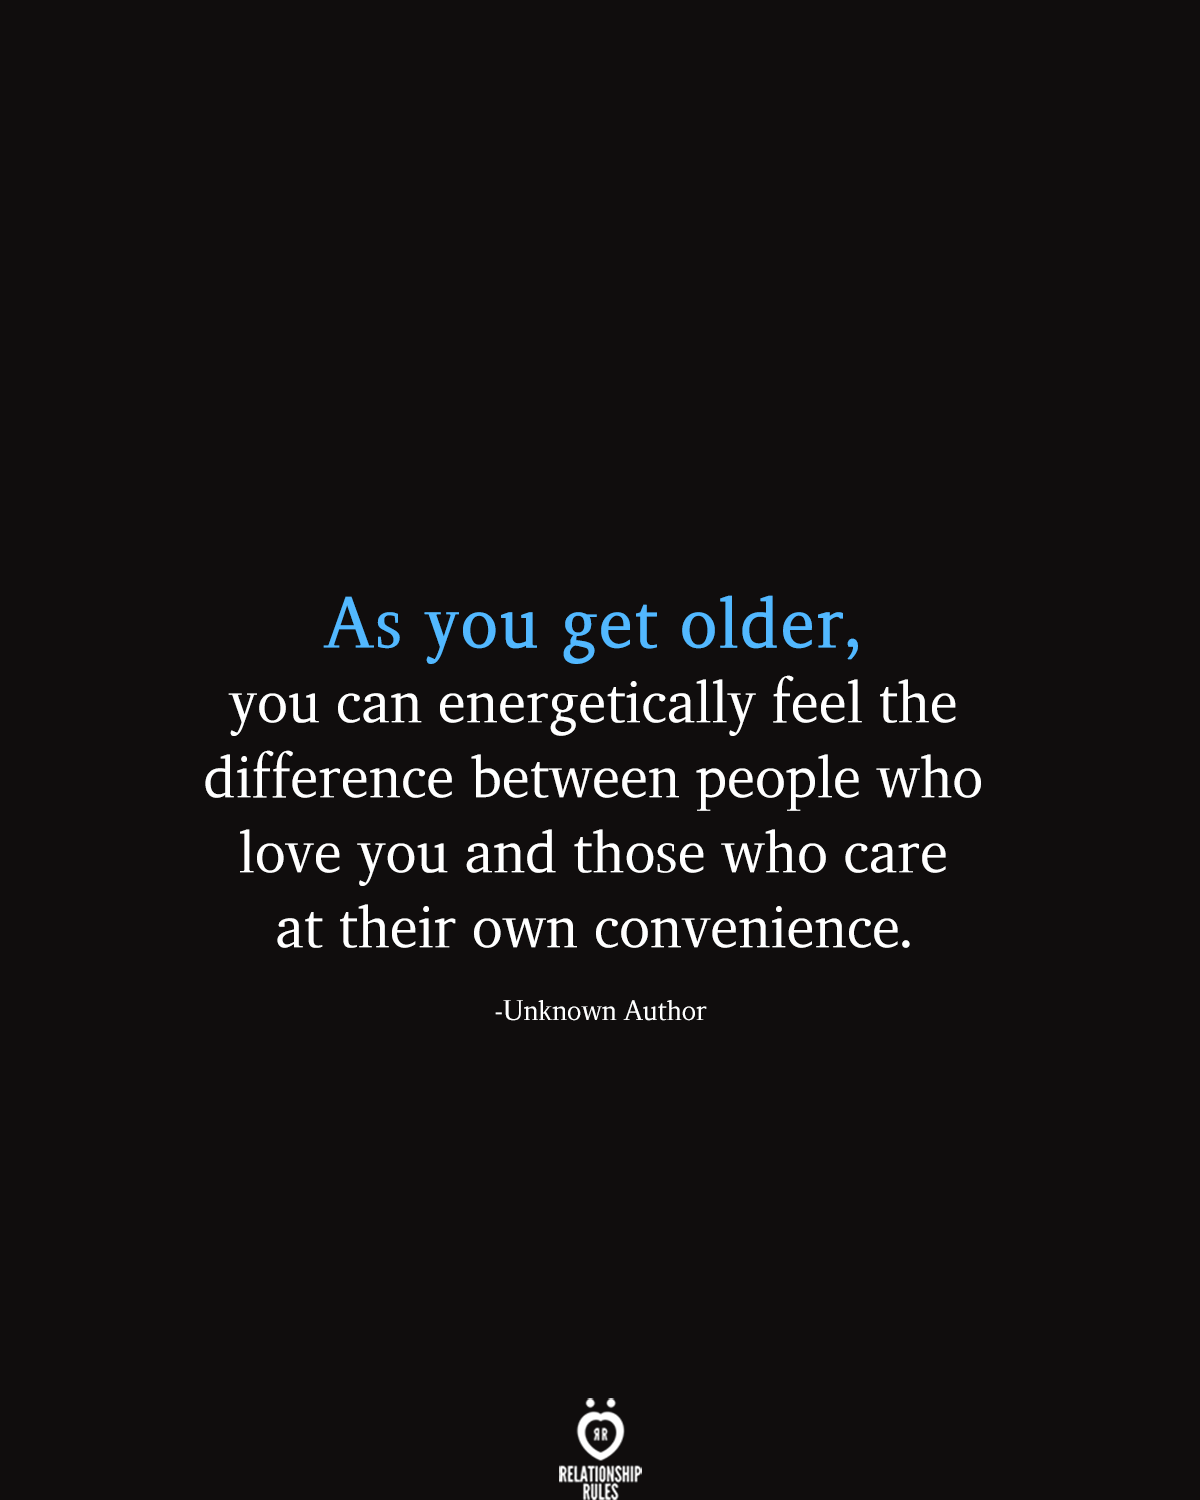 As You Get Older, You Can Energetically Feel The Difference Between People Who Love You